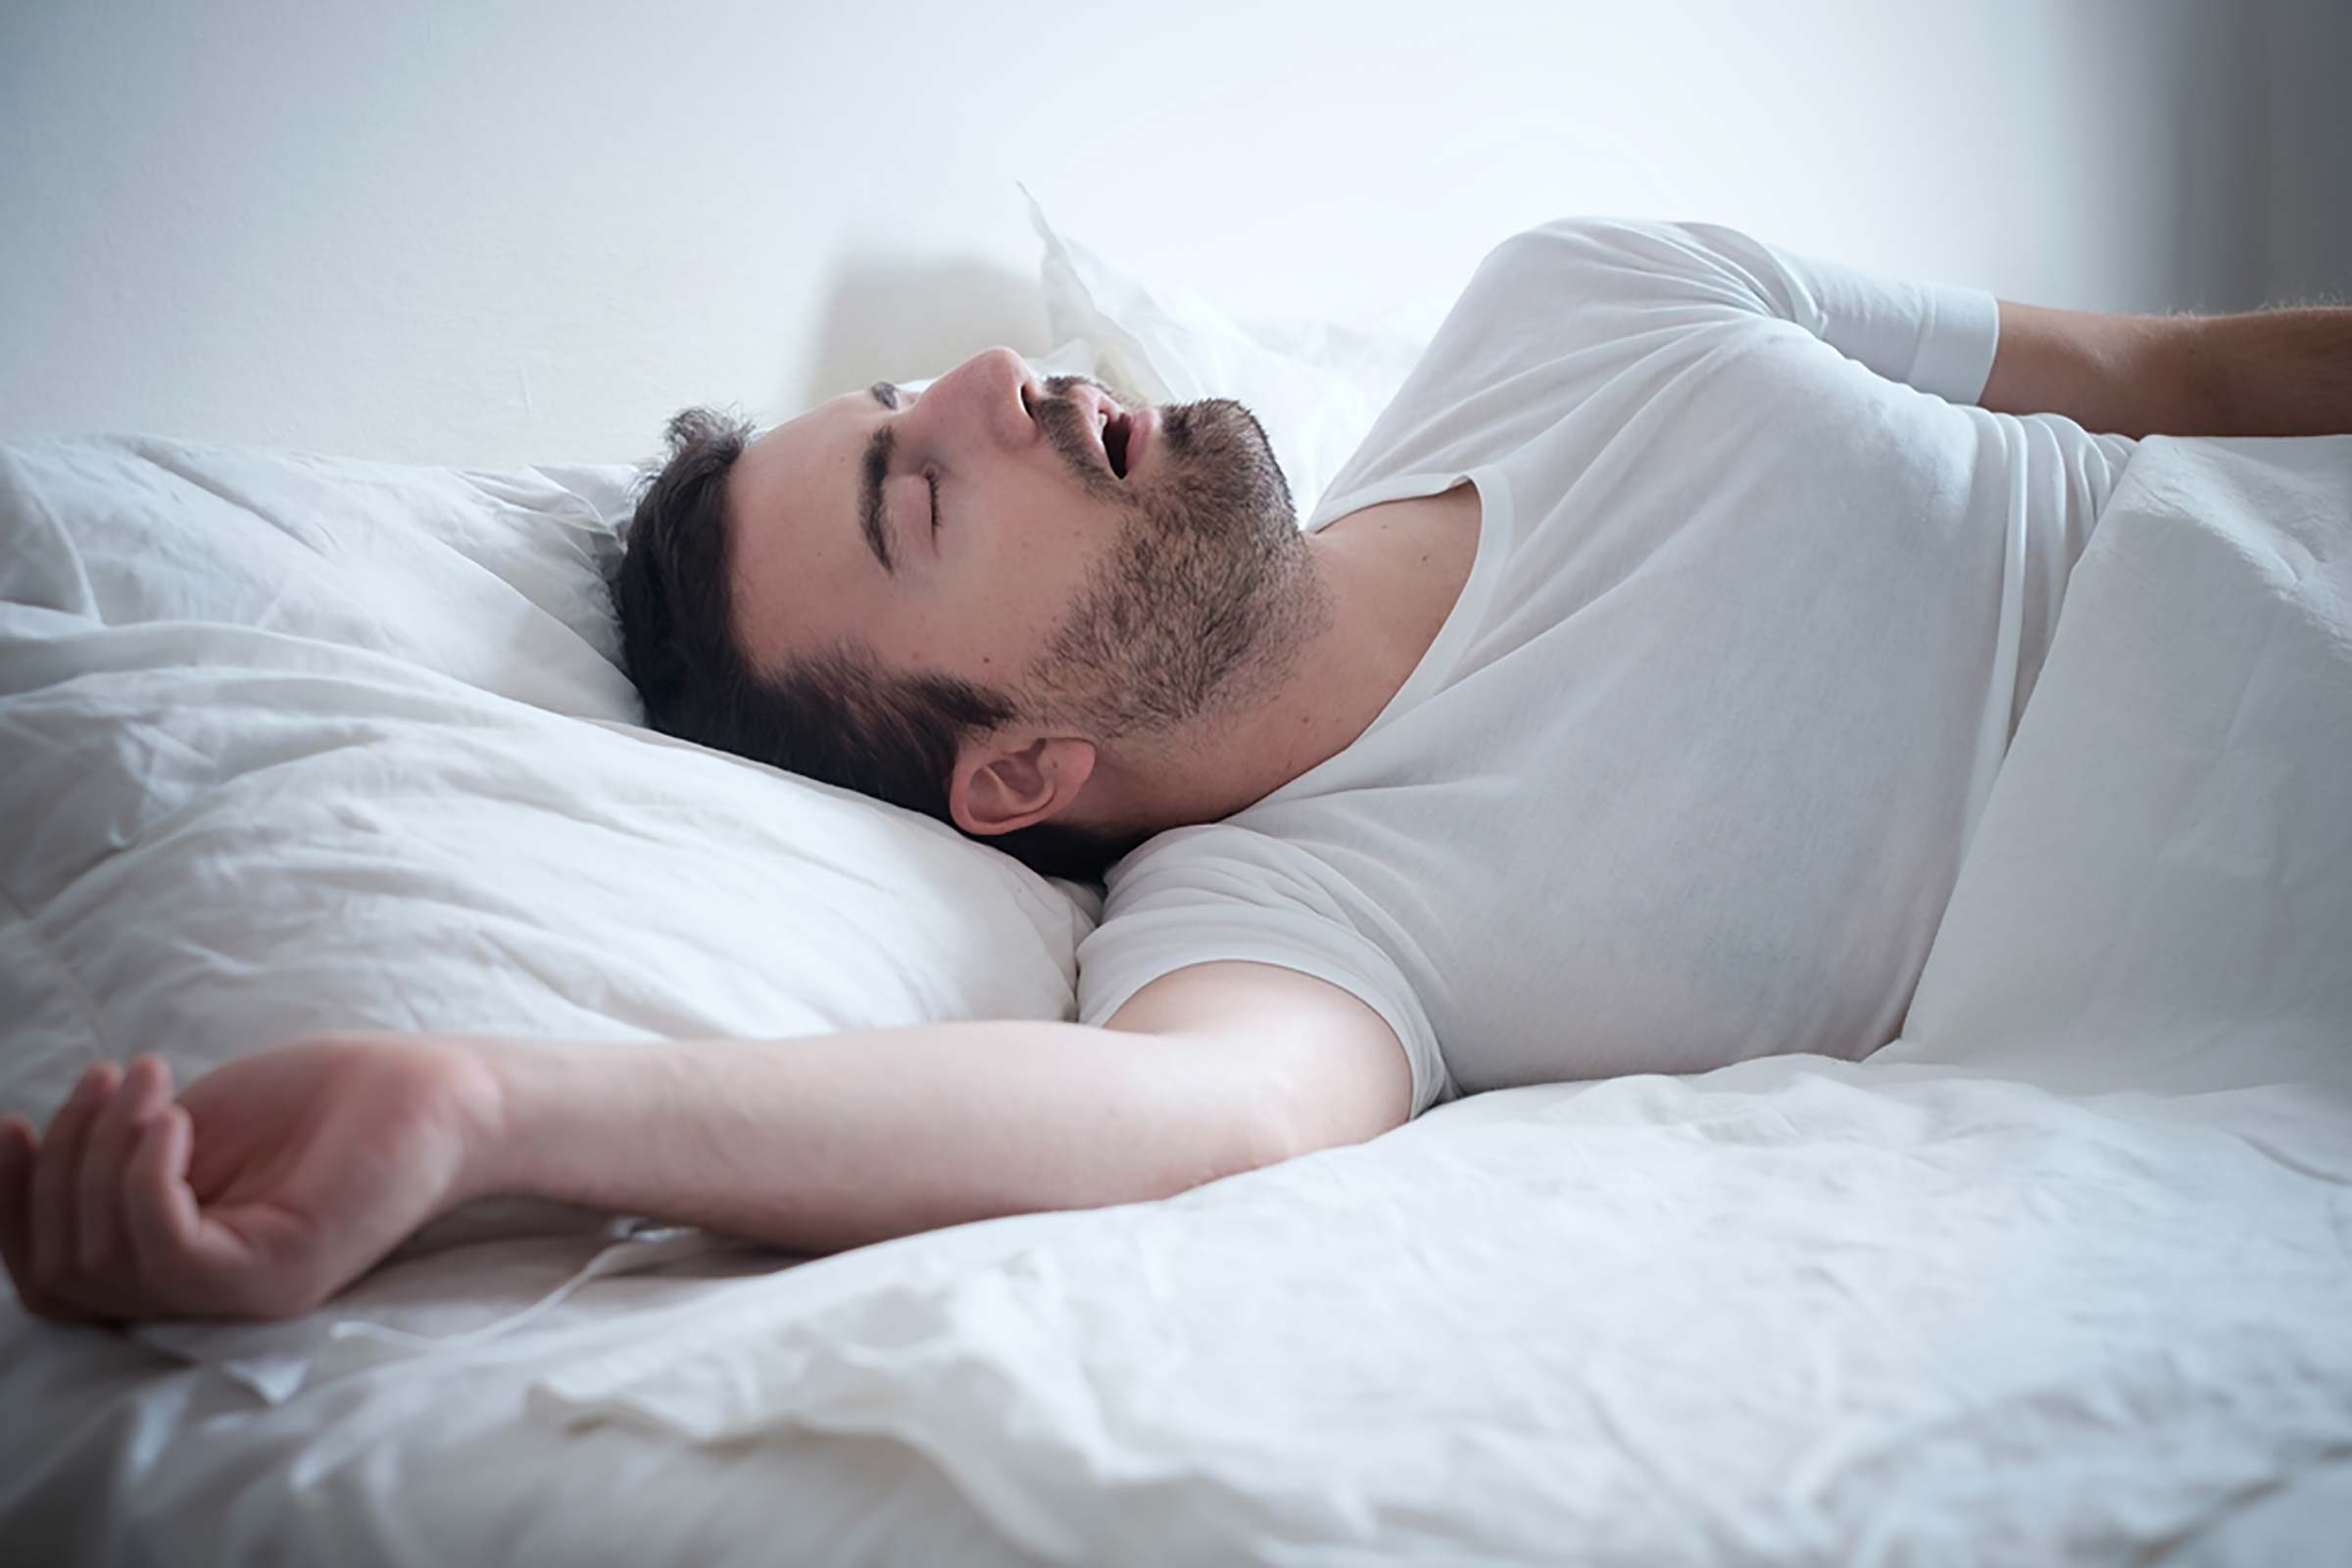 man sleeping with mouth open, sleep apnea, snoring